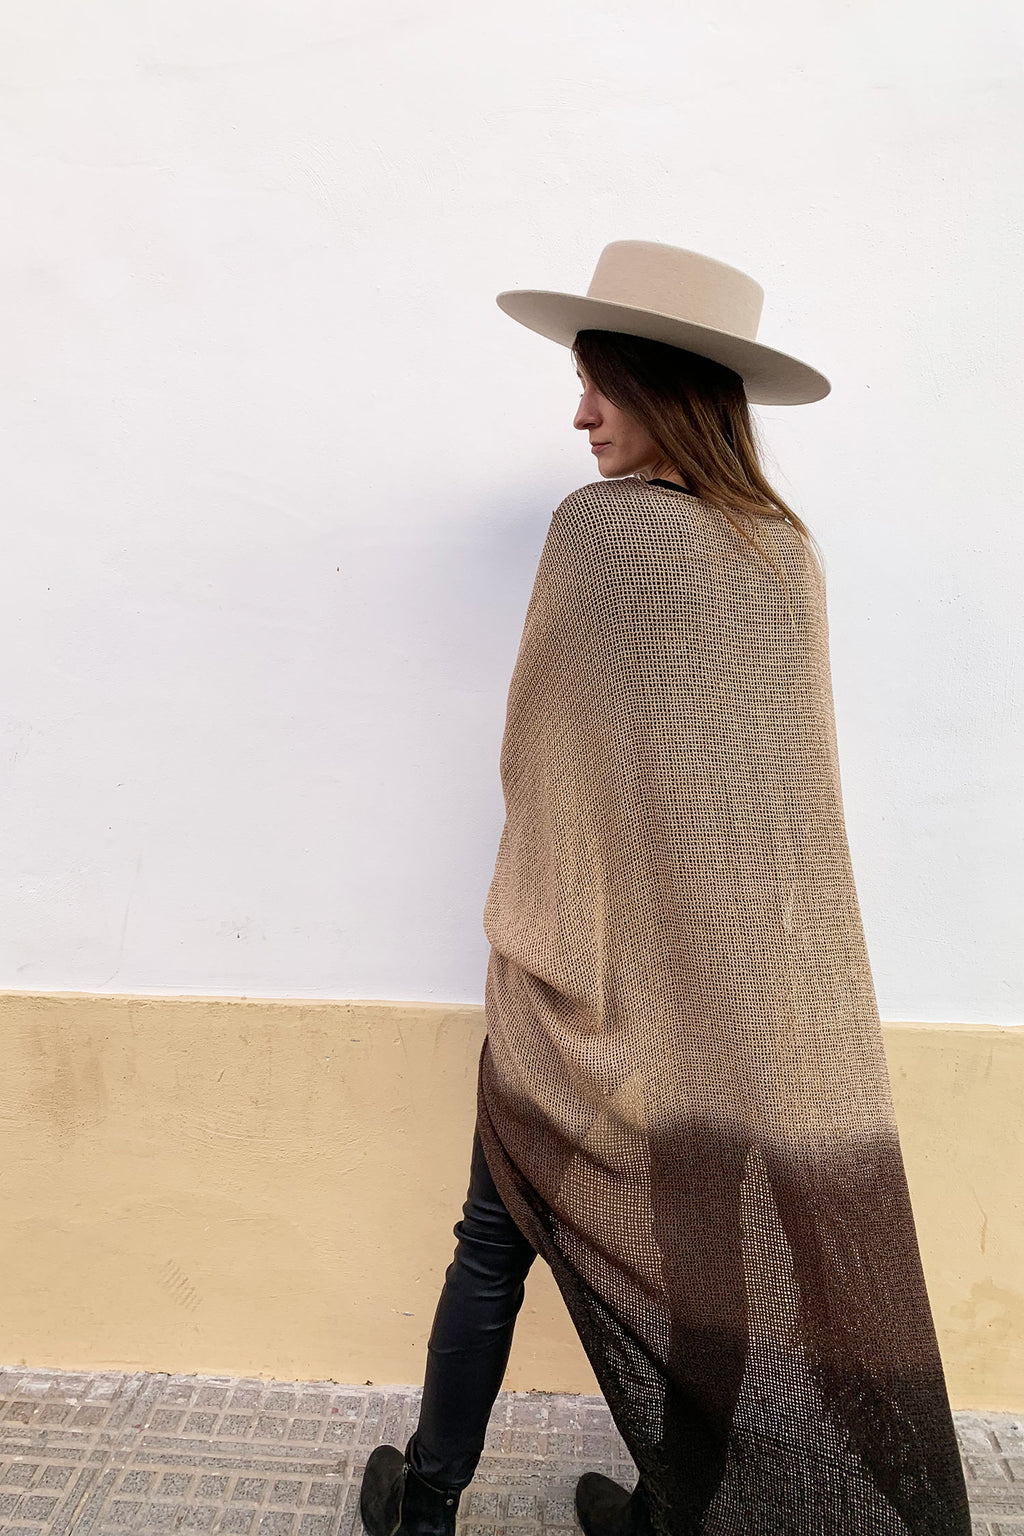 Savanna Long Net Brown Beige Ombre Jacket